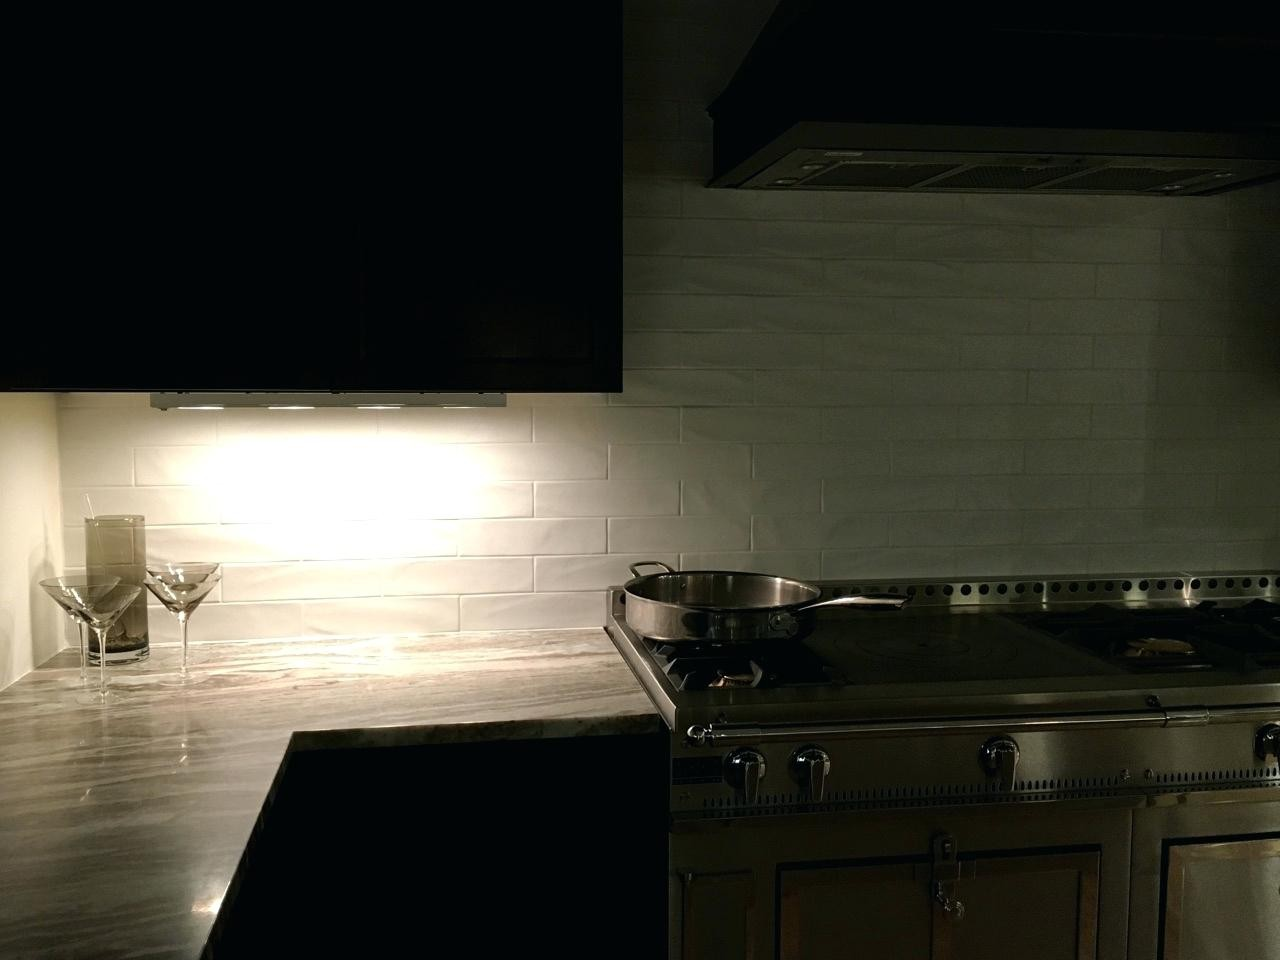 Full Size of Counter Attack Under Lights Xenon Cabinet Lighting La Kitchen Home Depot Magnificent Ideas